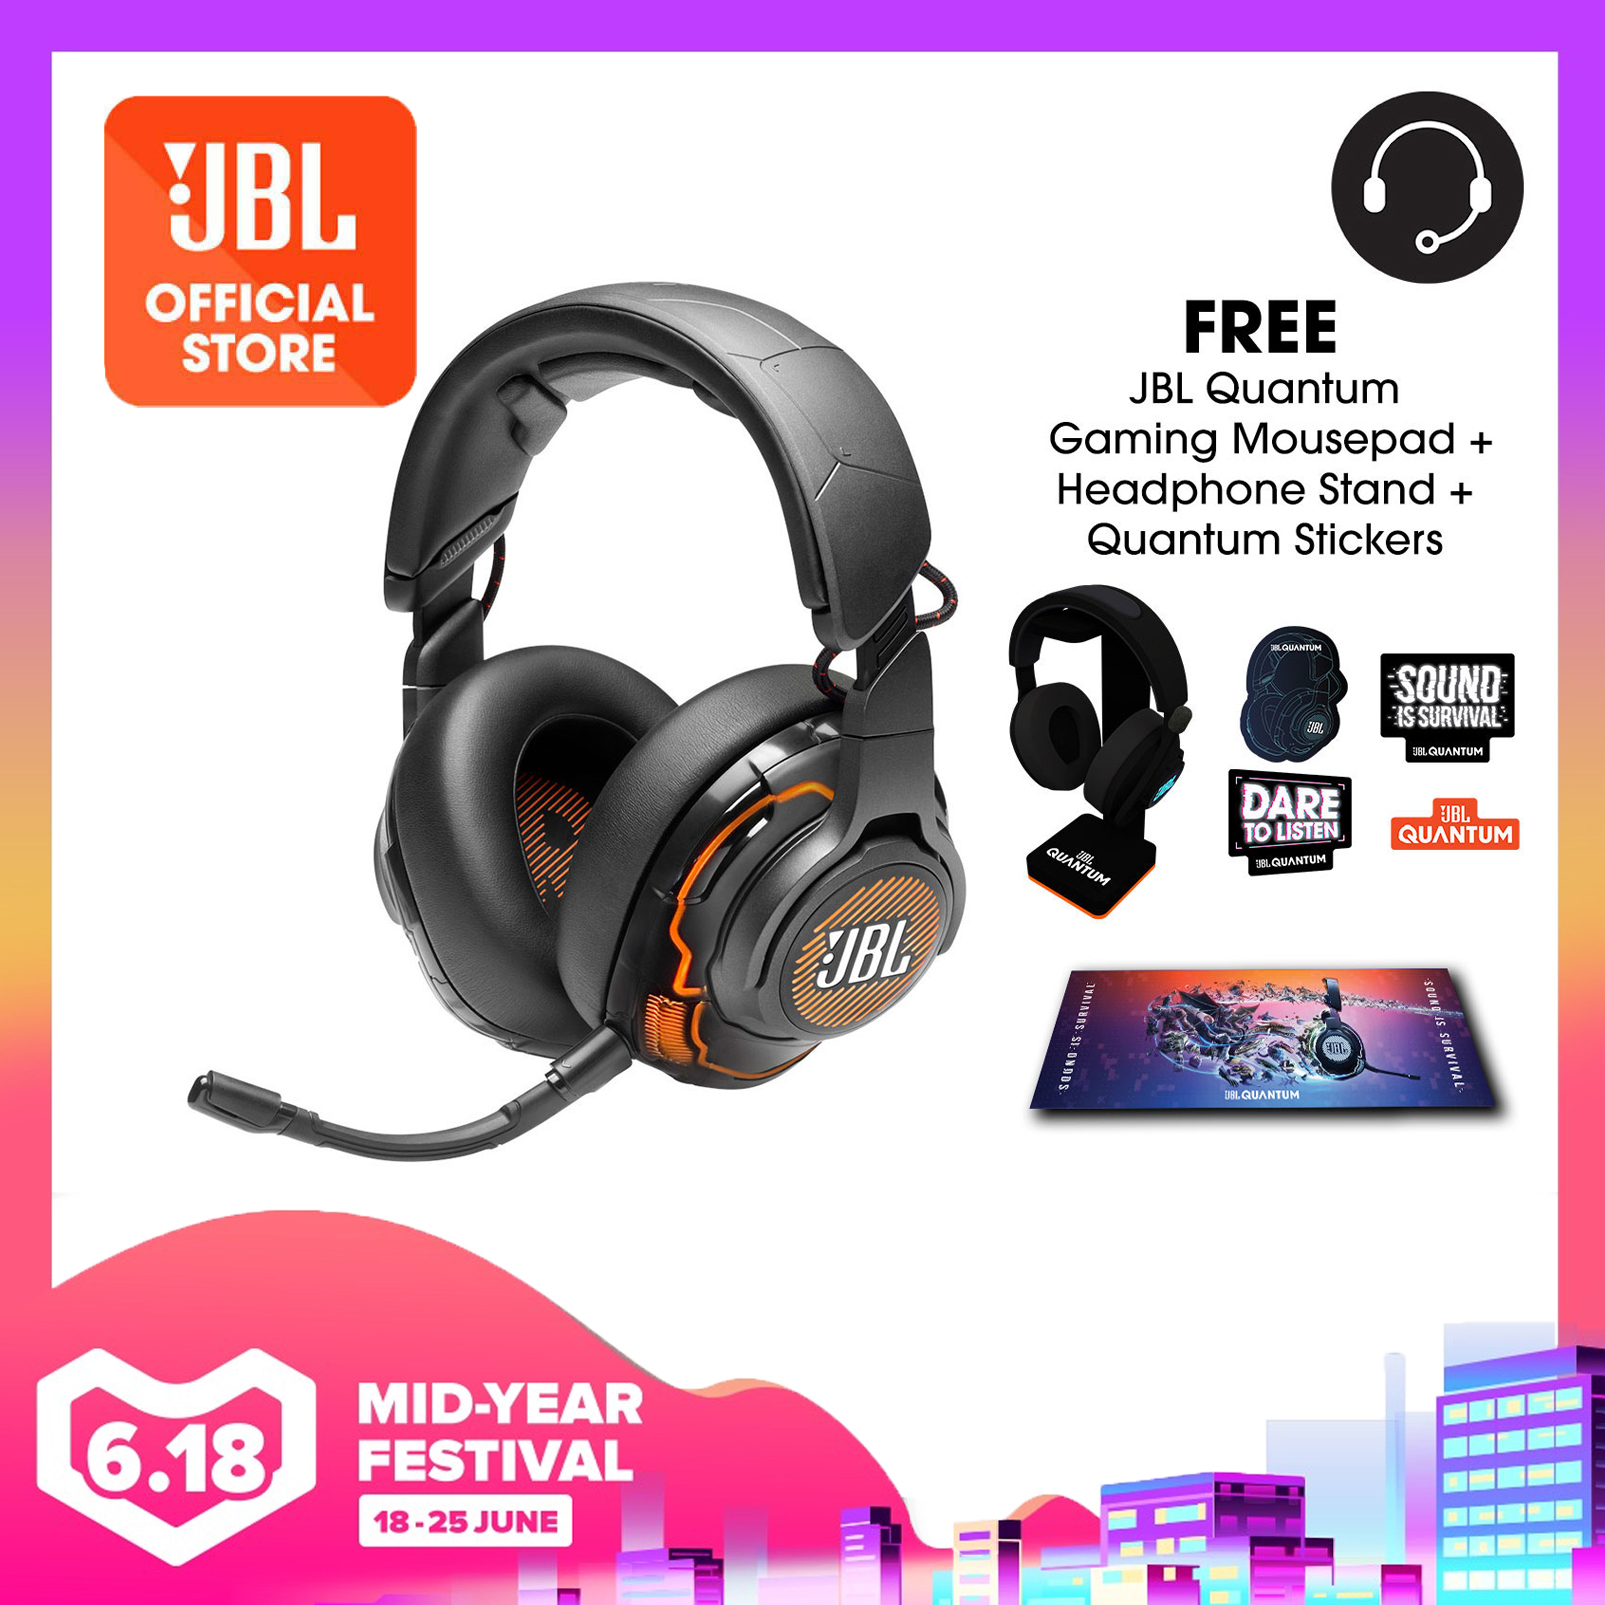 JBL Quantum One USB wired over-ear professional gaming headset with head-tracking enhanced JBL QuantumSPHERE 360 + Quantum Headphone Stand + Gaming Mouse Pad + Quantum Stickers | Why Not Deals